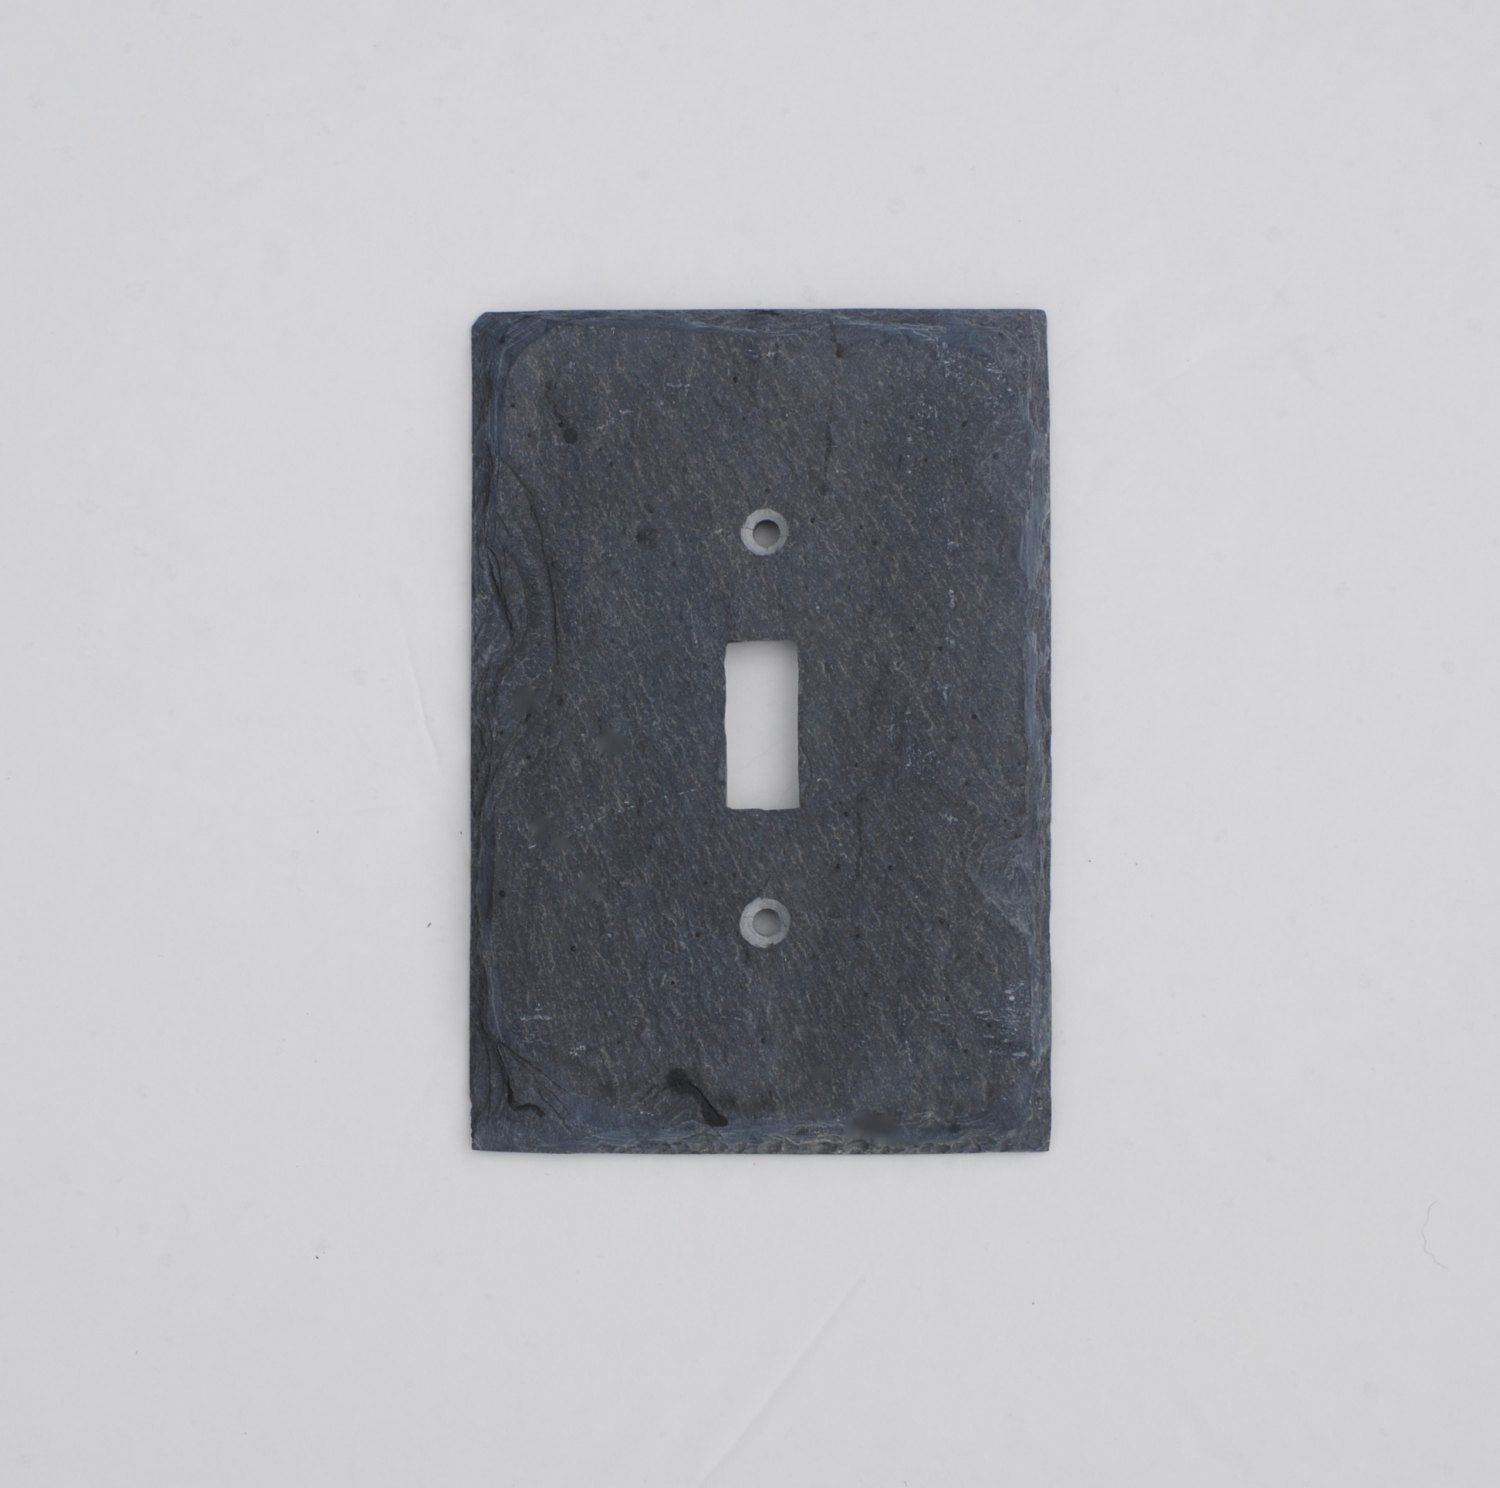 White Decorative Light Switch Covers Decorative Light Switch Cover Switch Plate Wall Plate Rustic